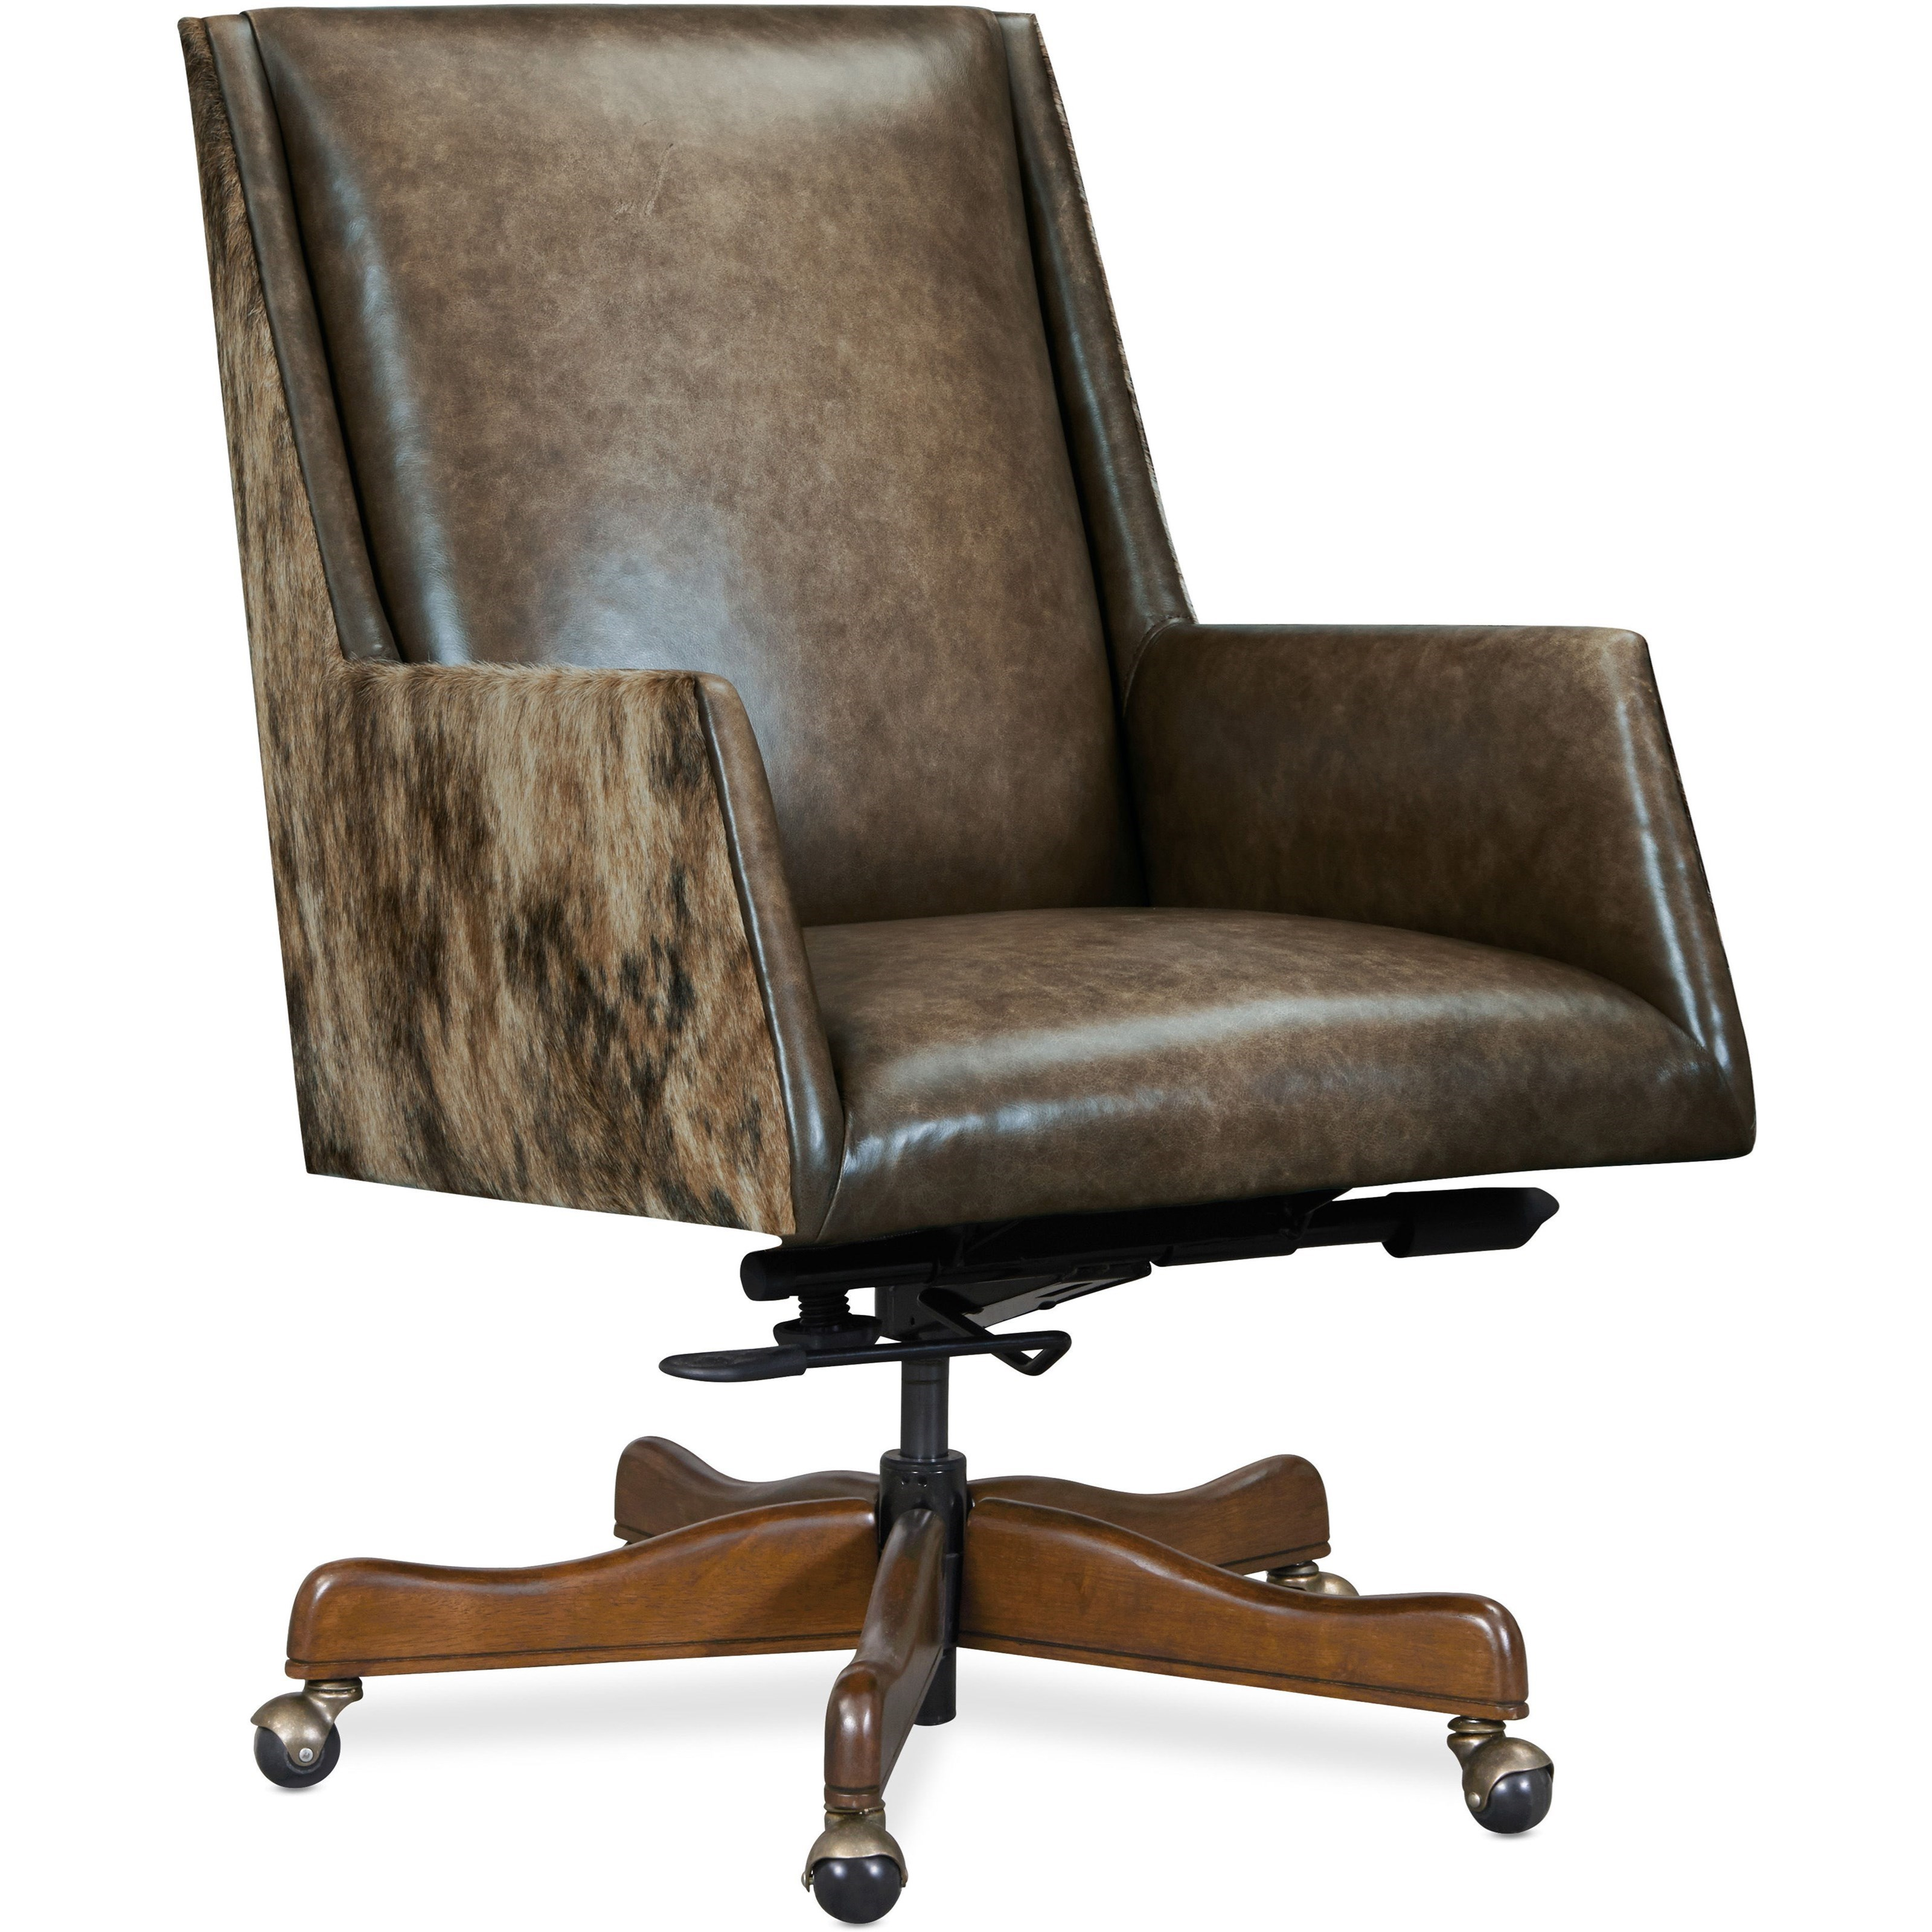 Executive Seating Rives Executive Swivel Tilt Chair by Hooker Furniture at Baer's Furniture